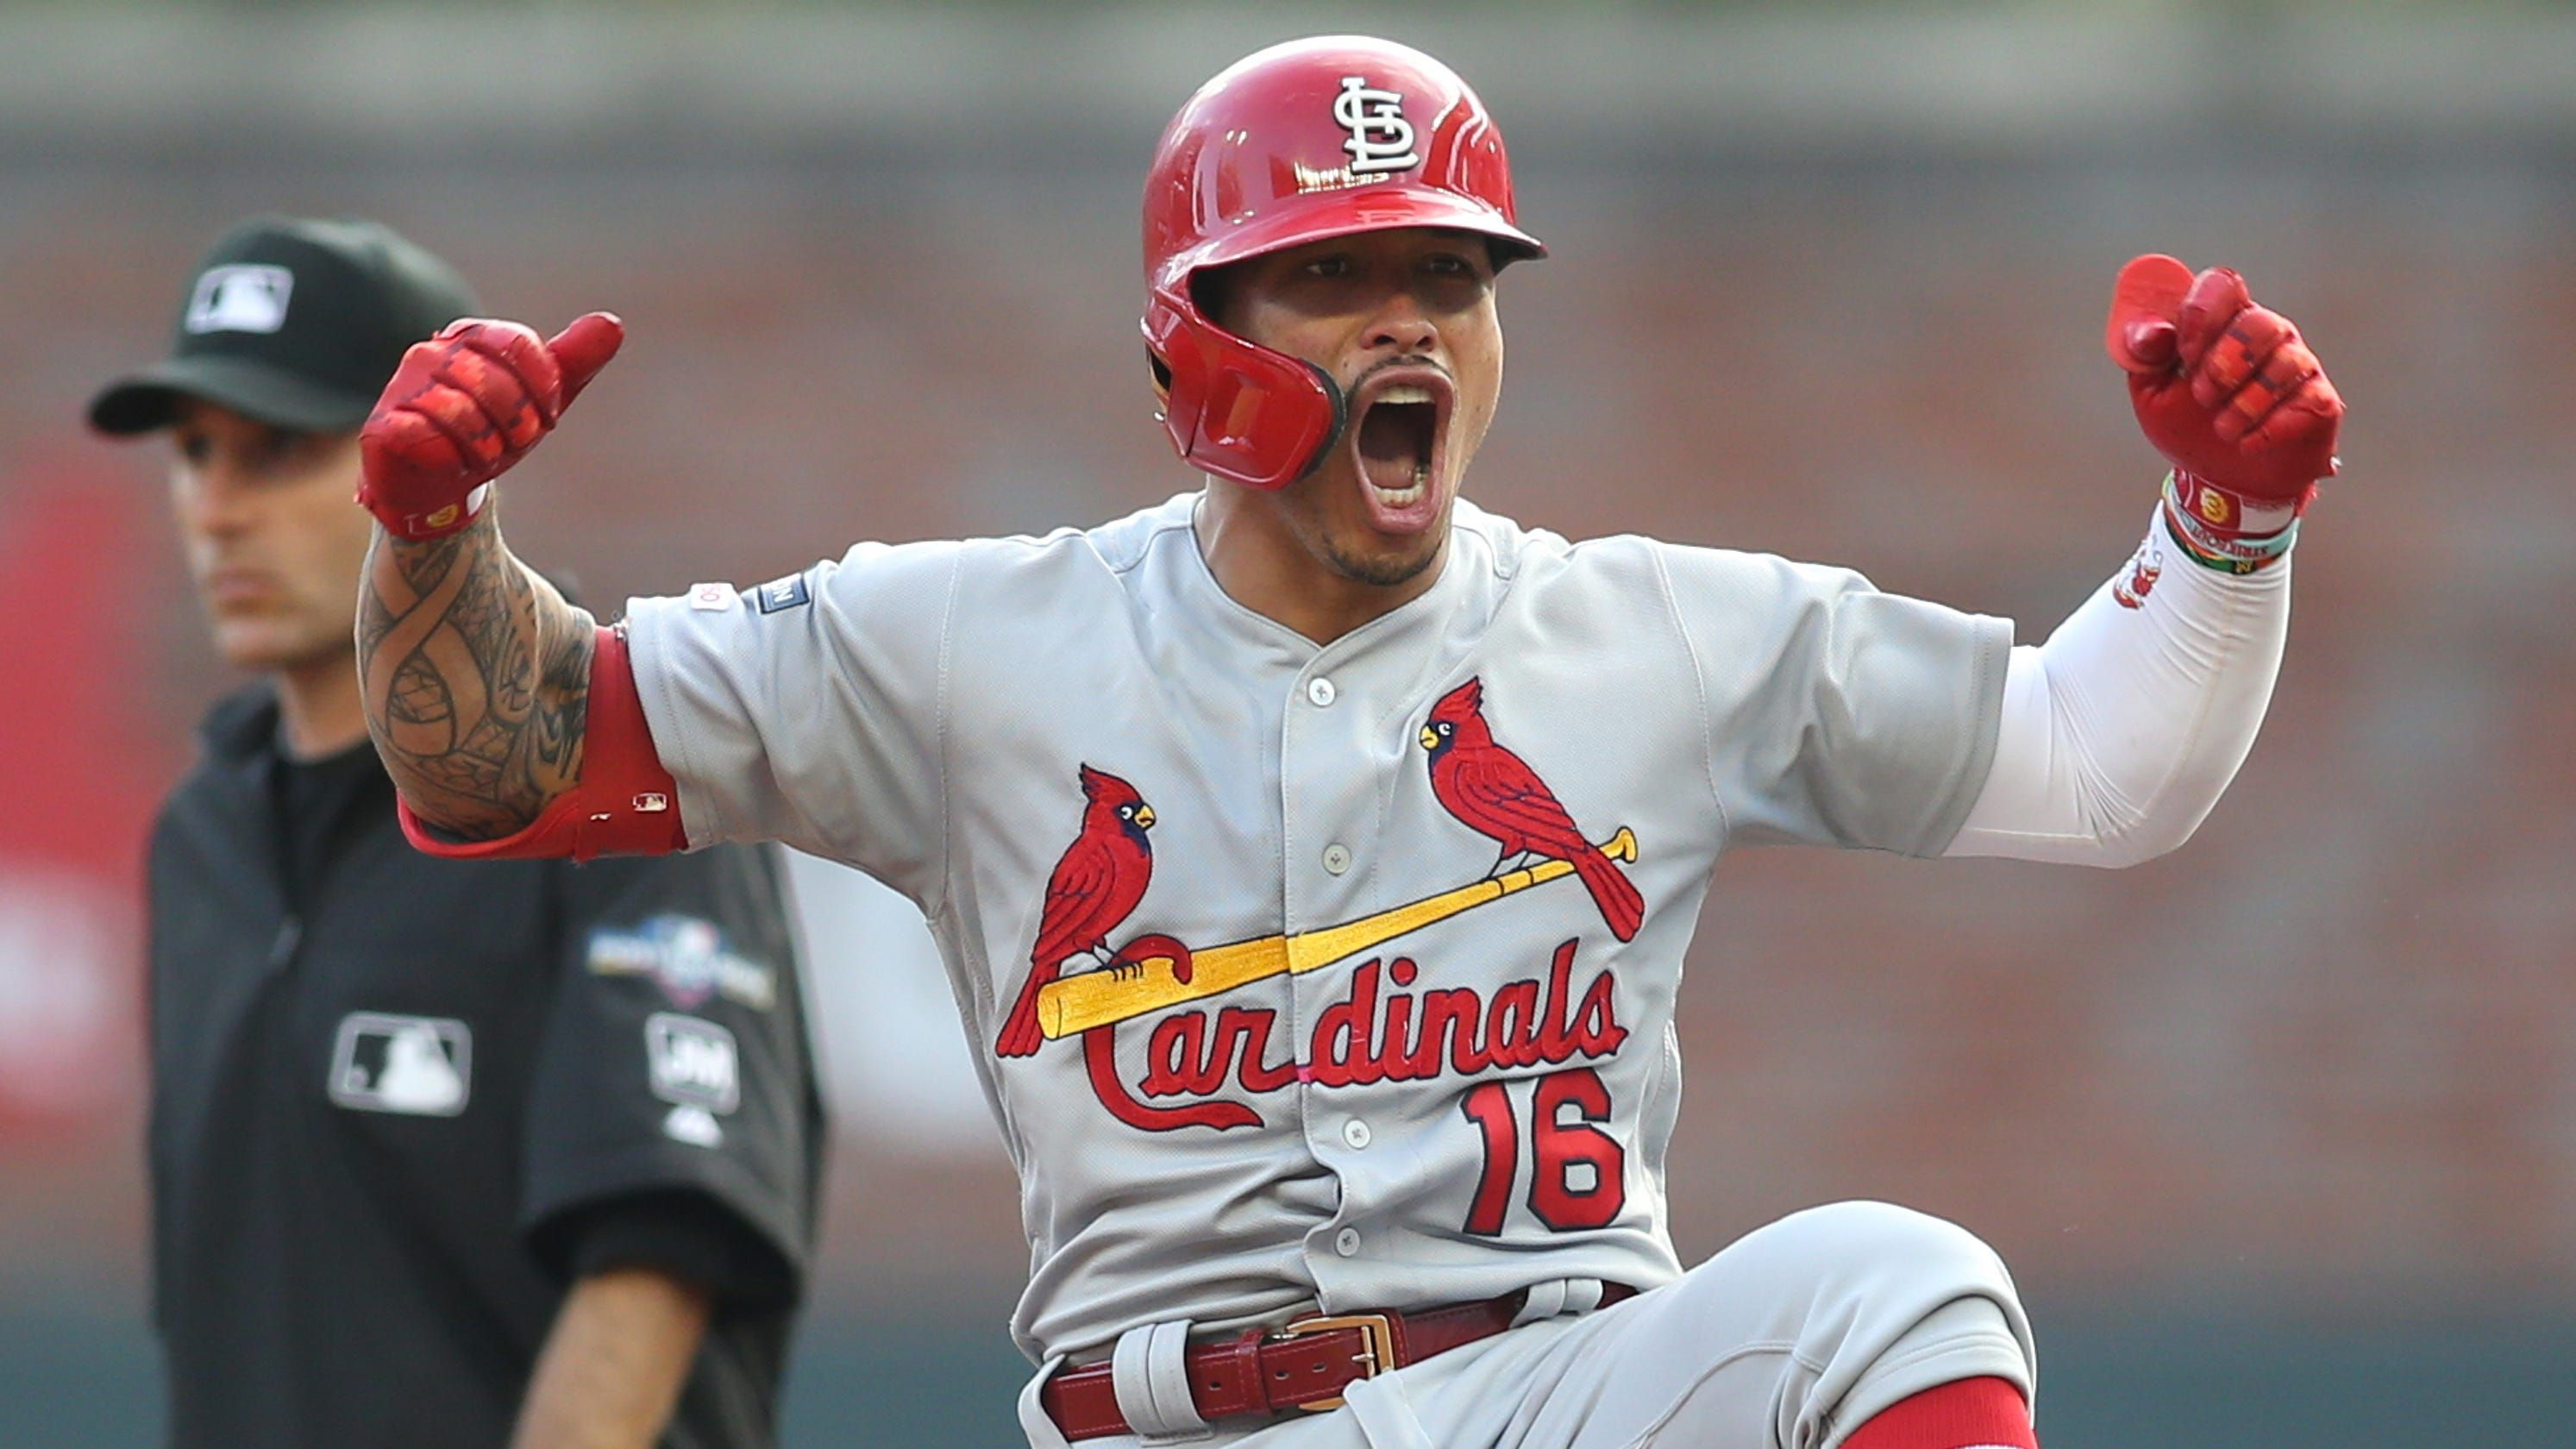 Behind Historic First Inning Cardinals Advance To Nlcs With Blowout Win Vs Braves In Nlds Game 5 Braves Cardinals Win Cardinals